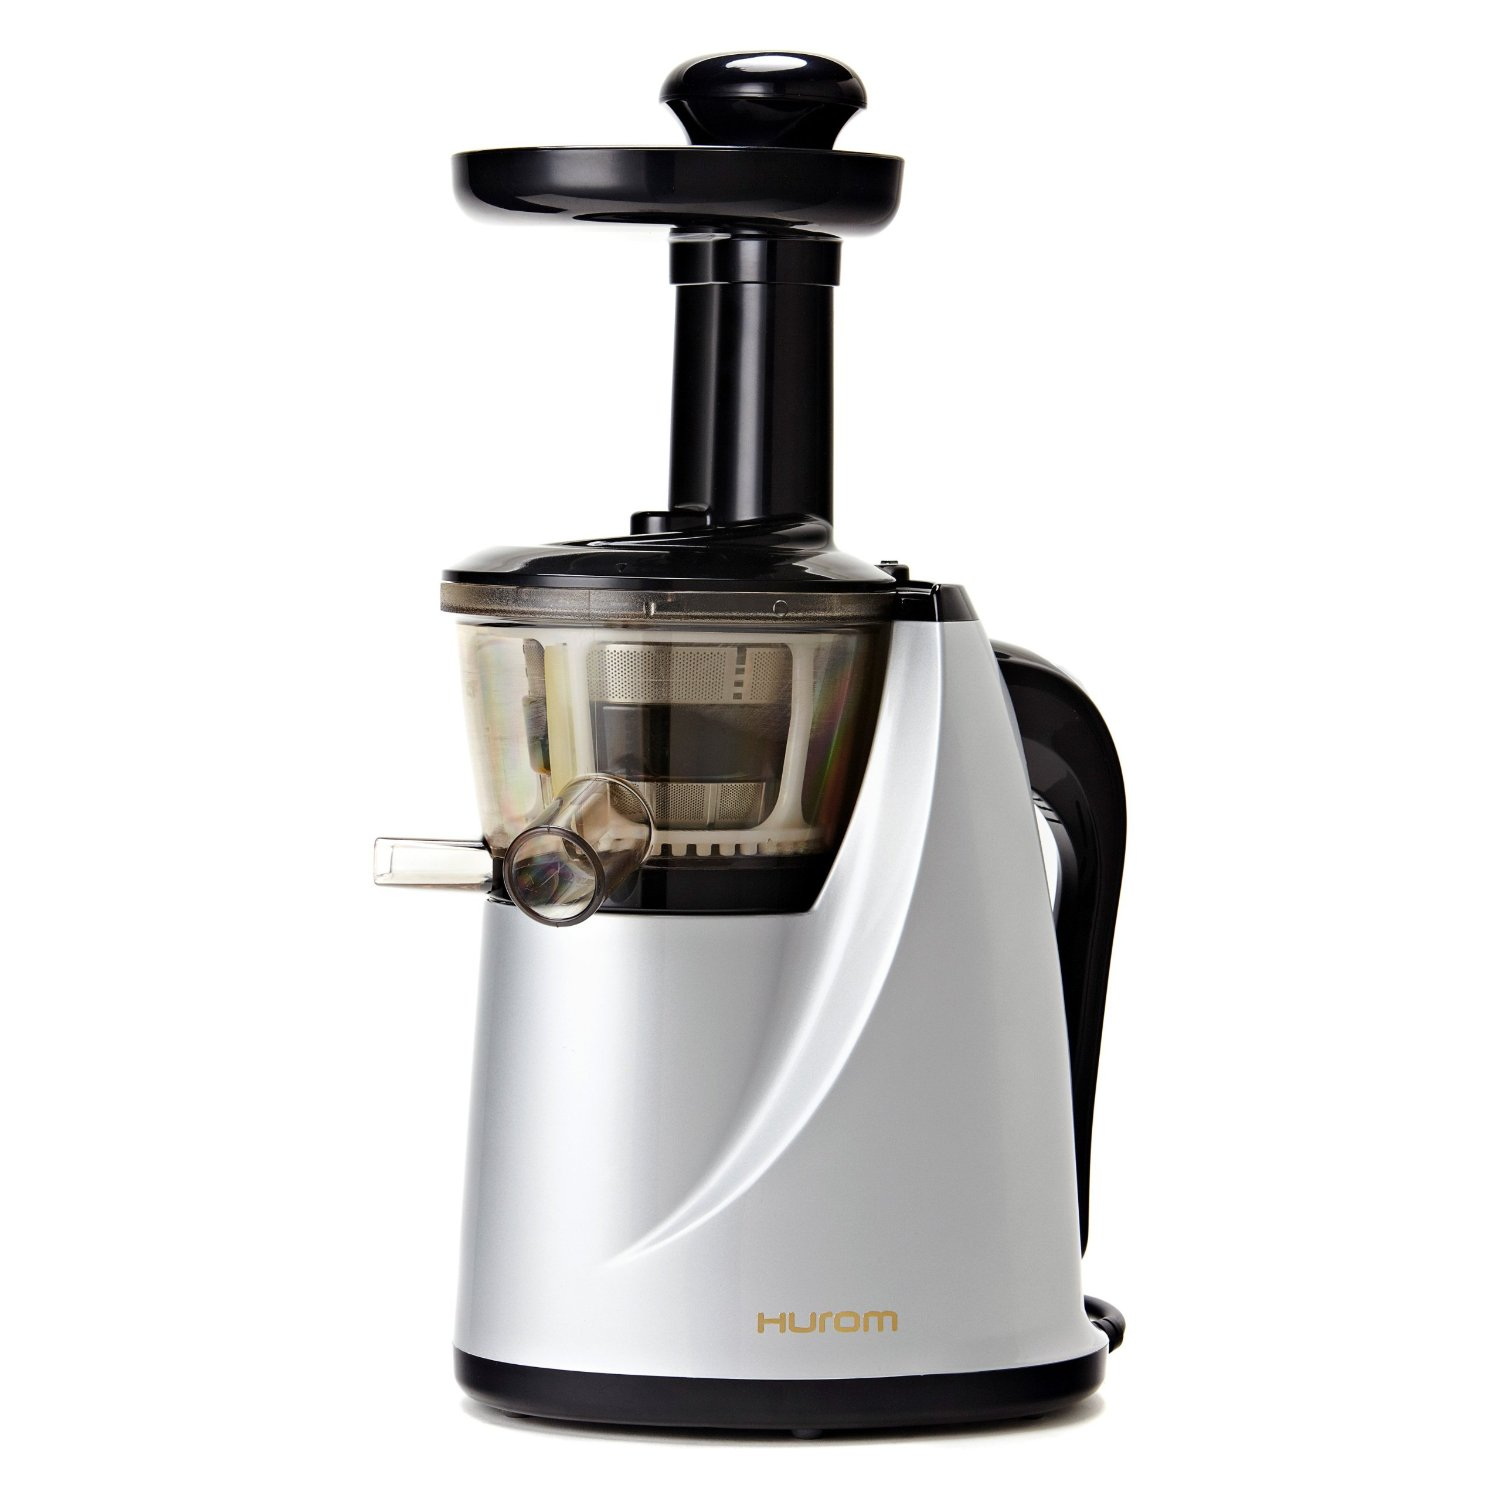 Hurom Slow Juicer Hu 100 : Hurom HU-100 Masticating Slow Juicer Review - Best Cold Press Juicers